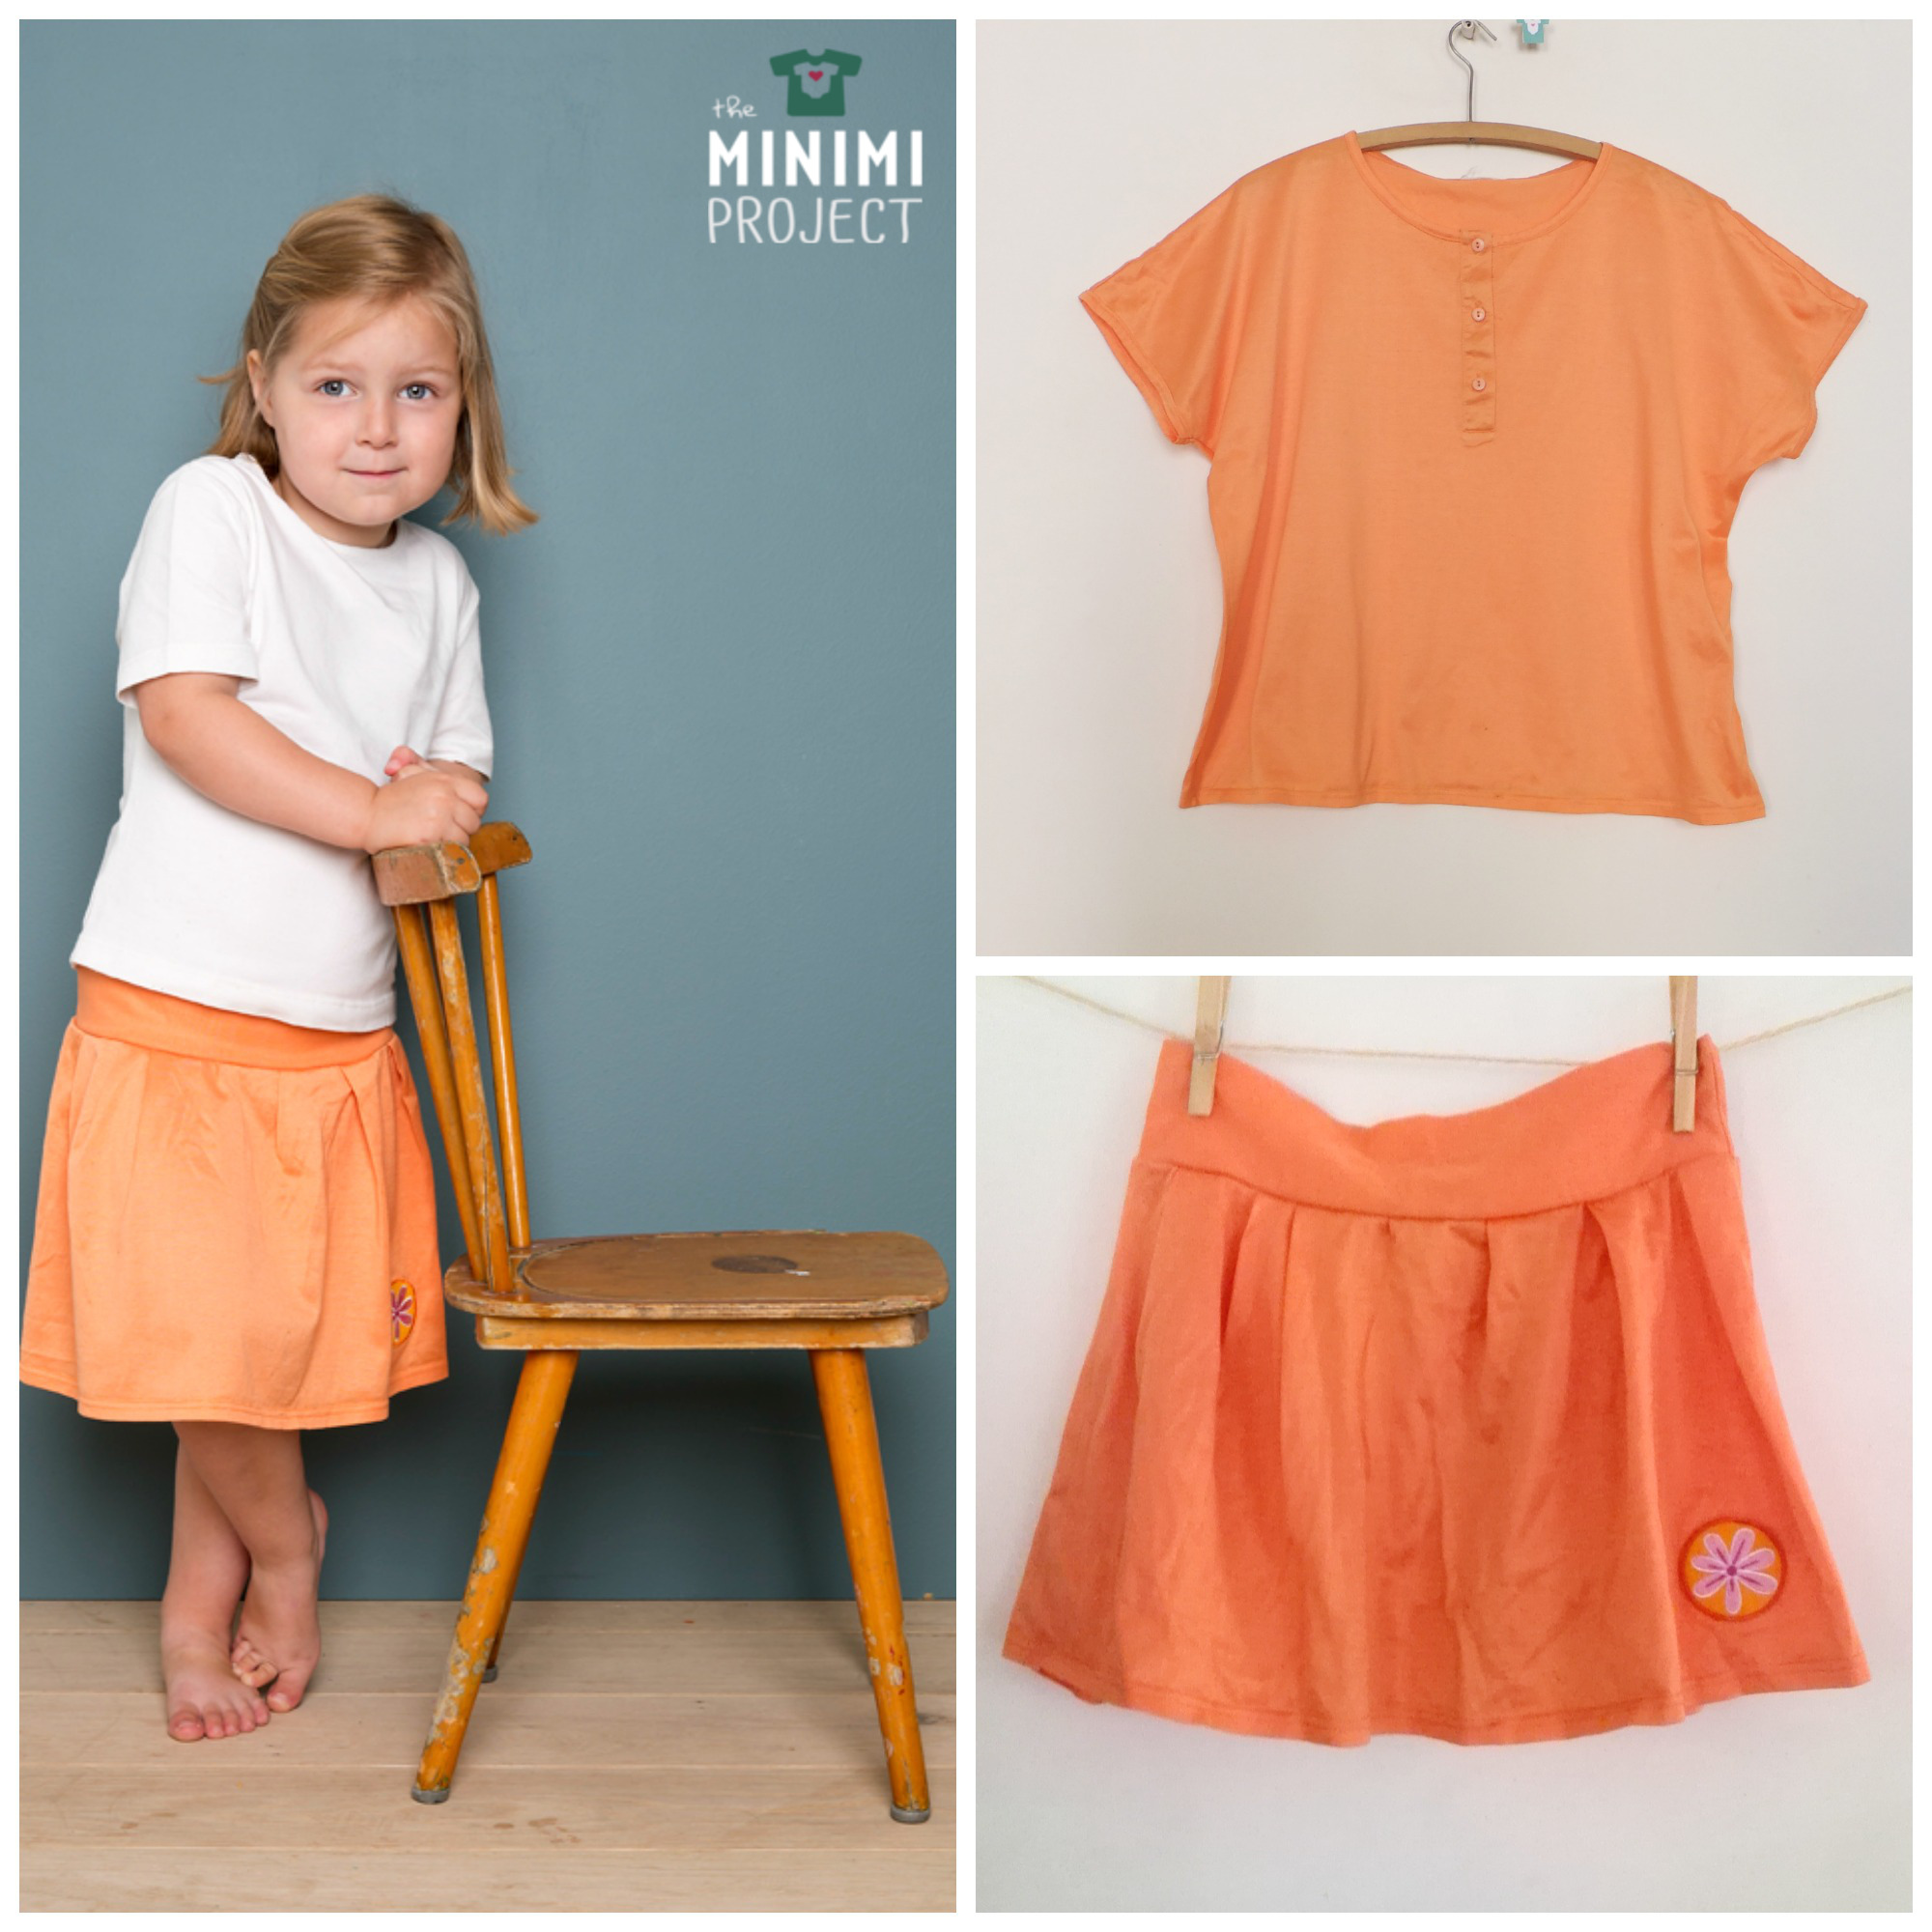 MINIMI Upcycled skirt from a t-shirt